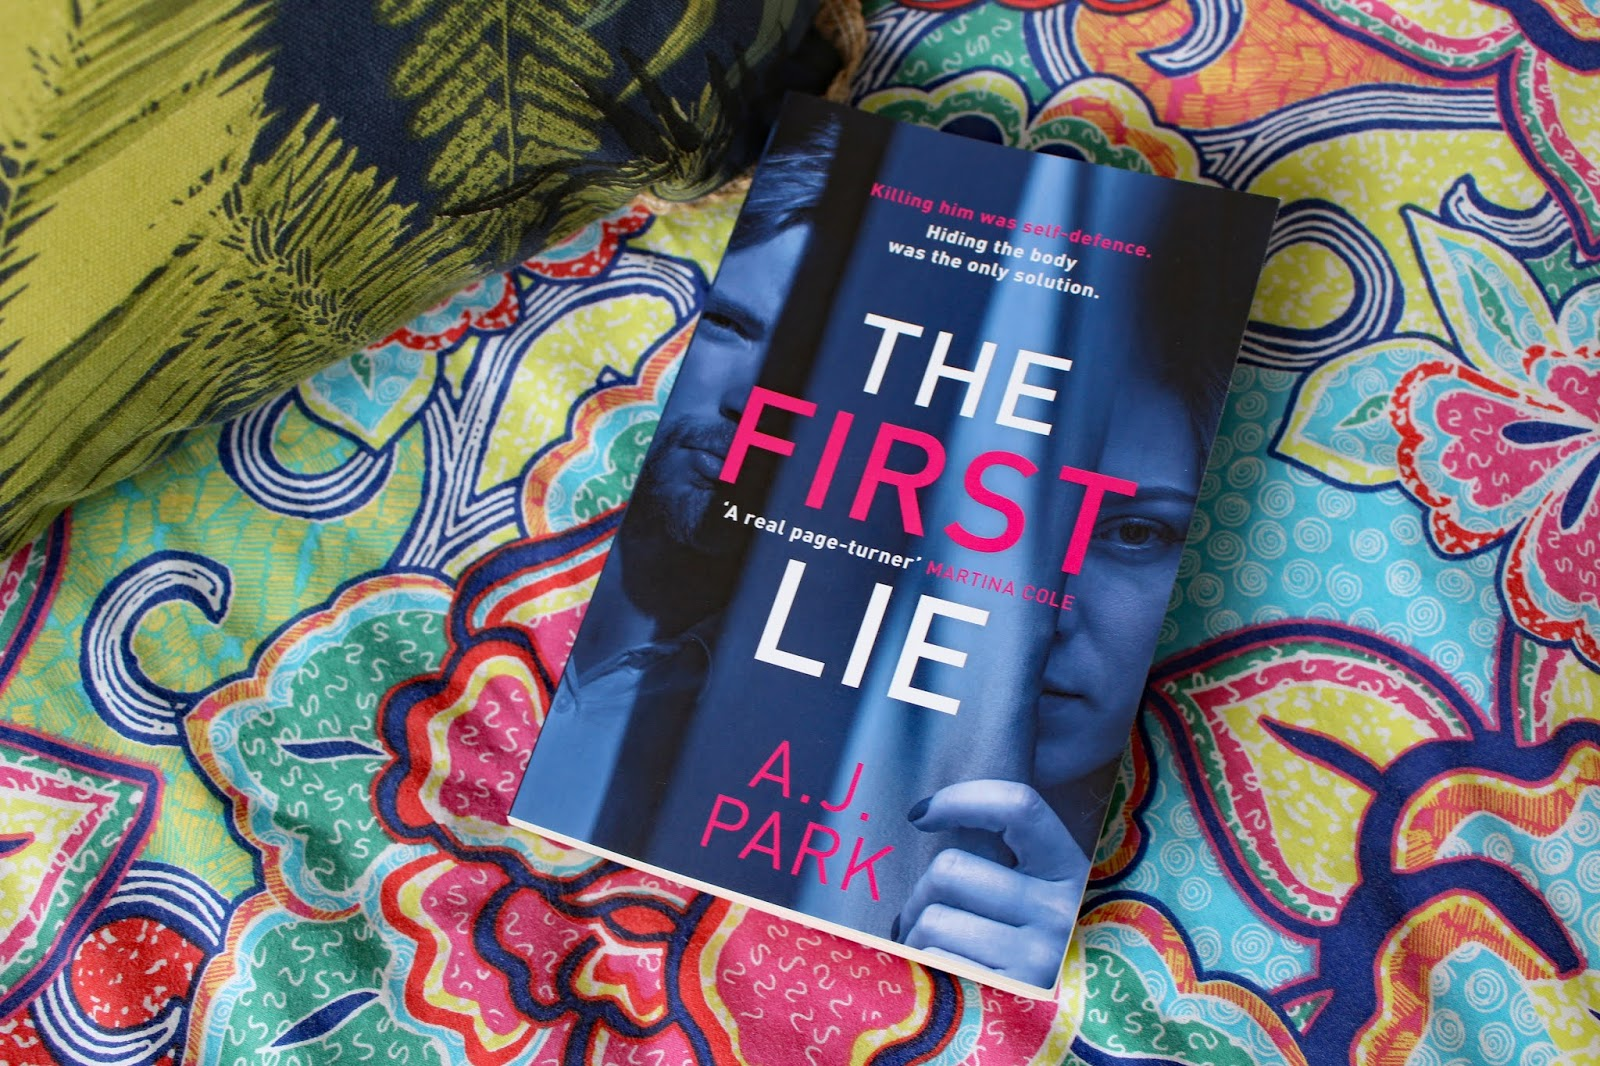 The First Lie By A.J Park | Book Review